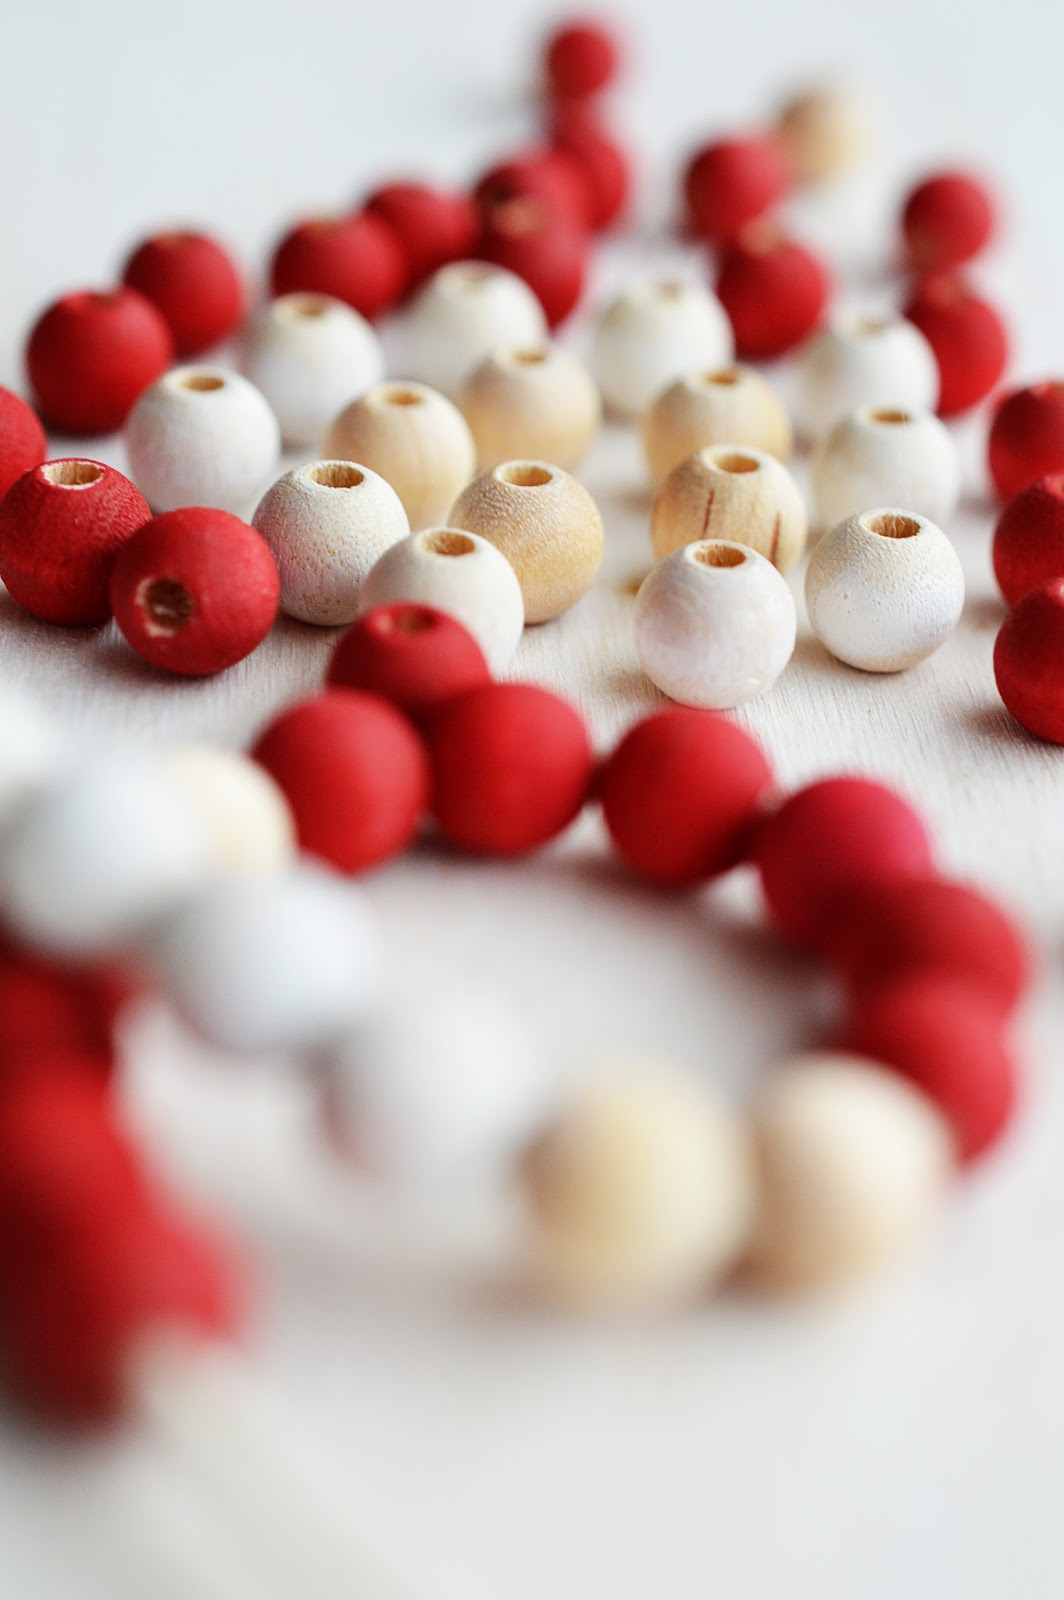 How to Paint Wooden Beads | Motte's Blog